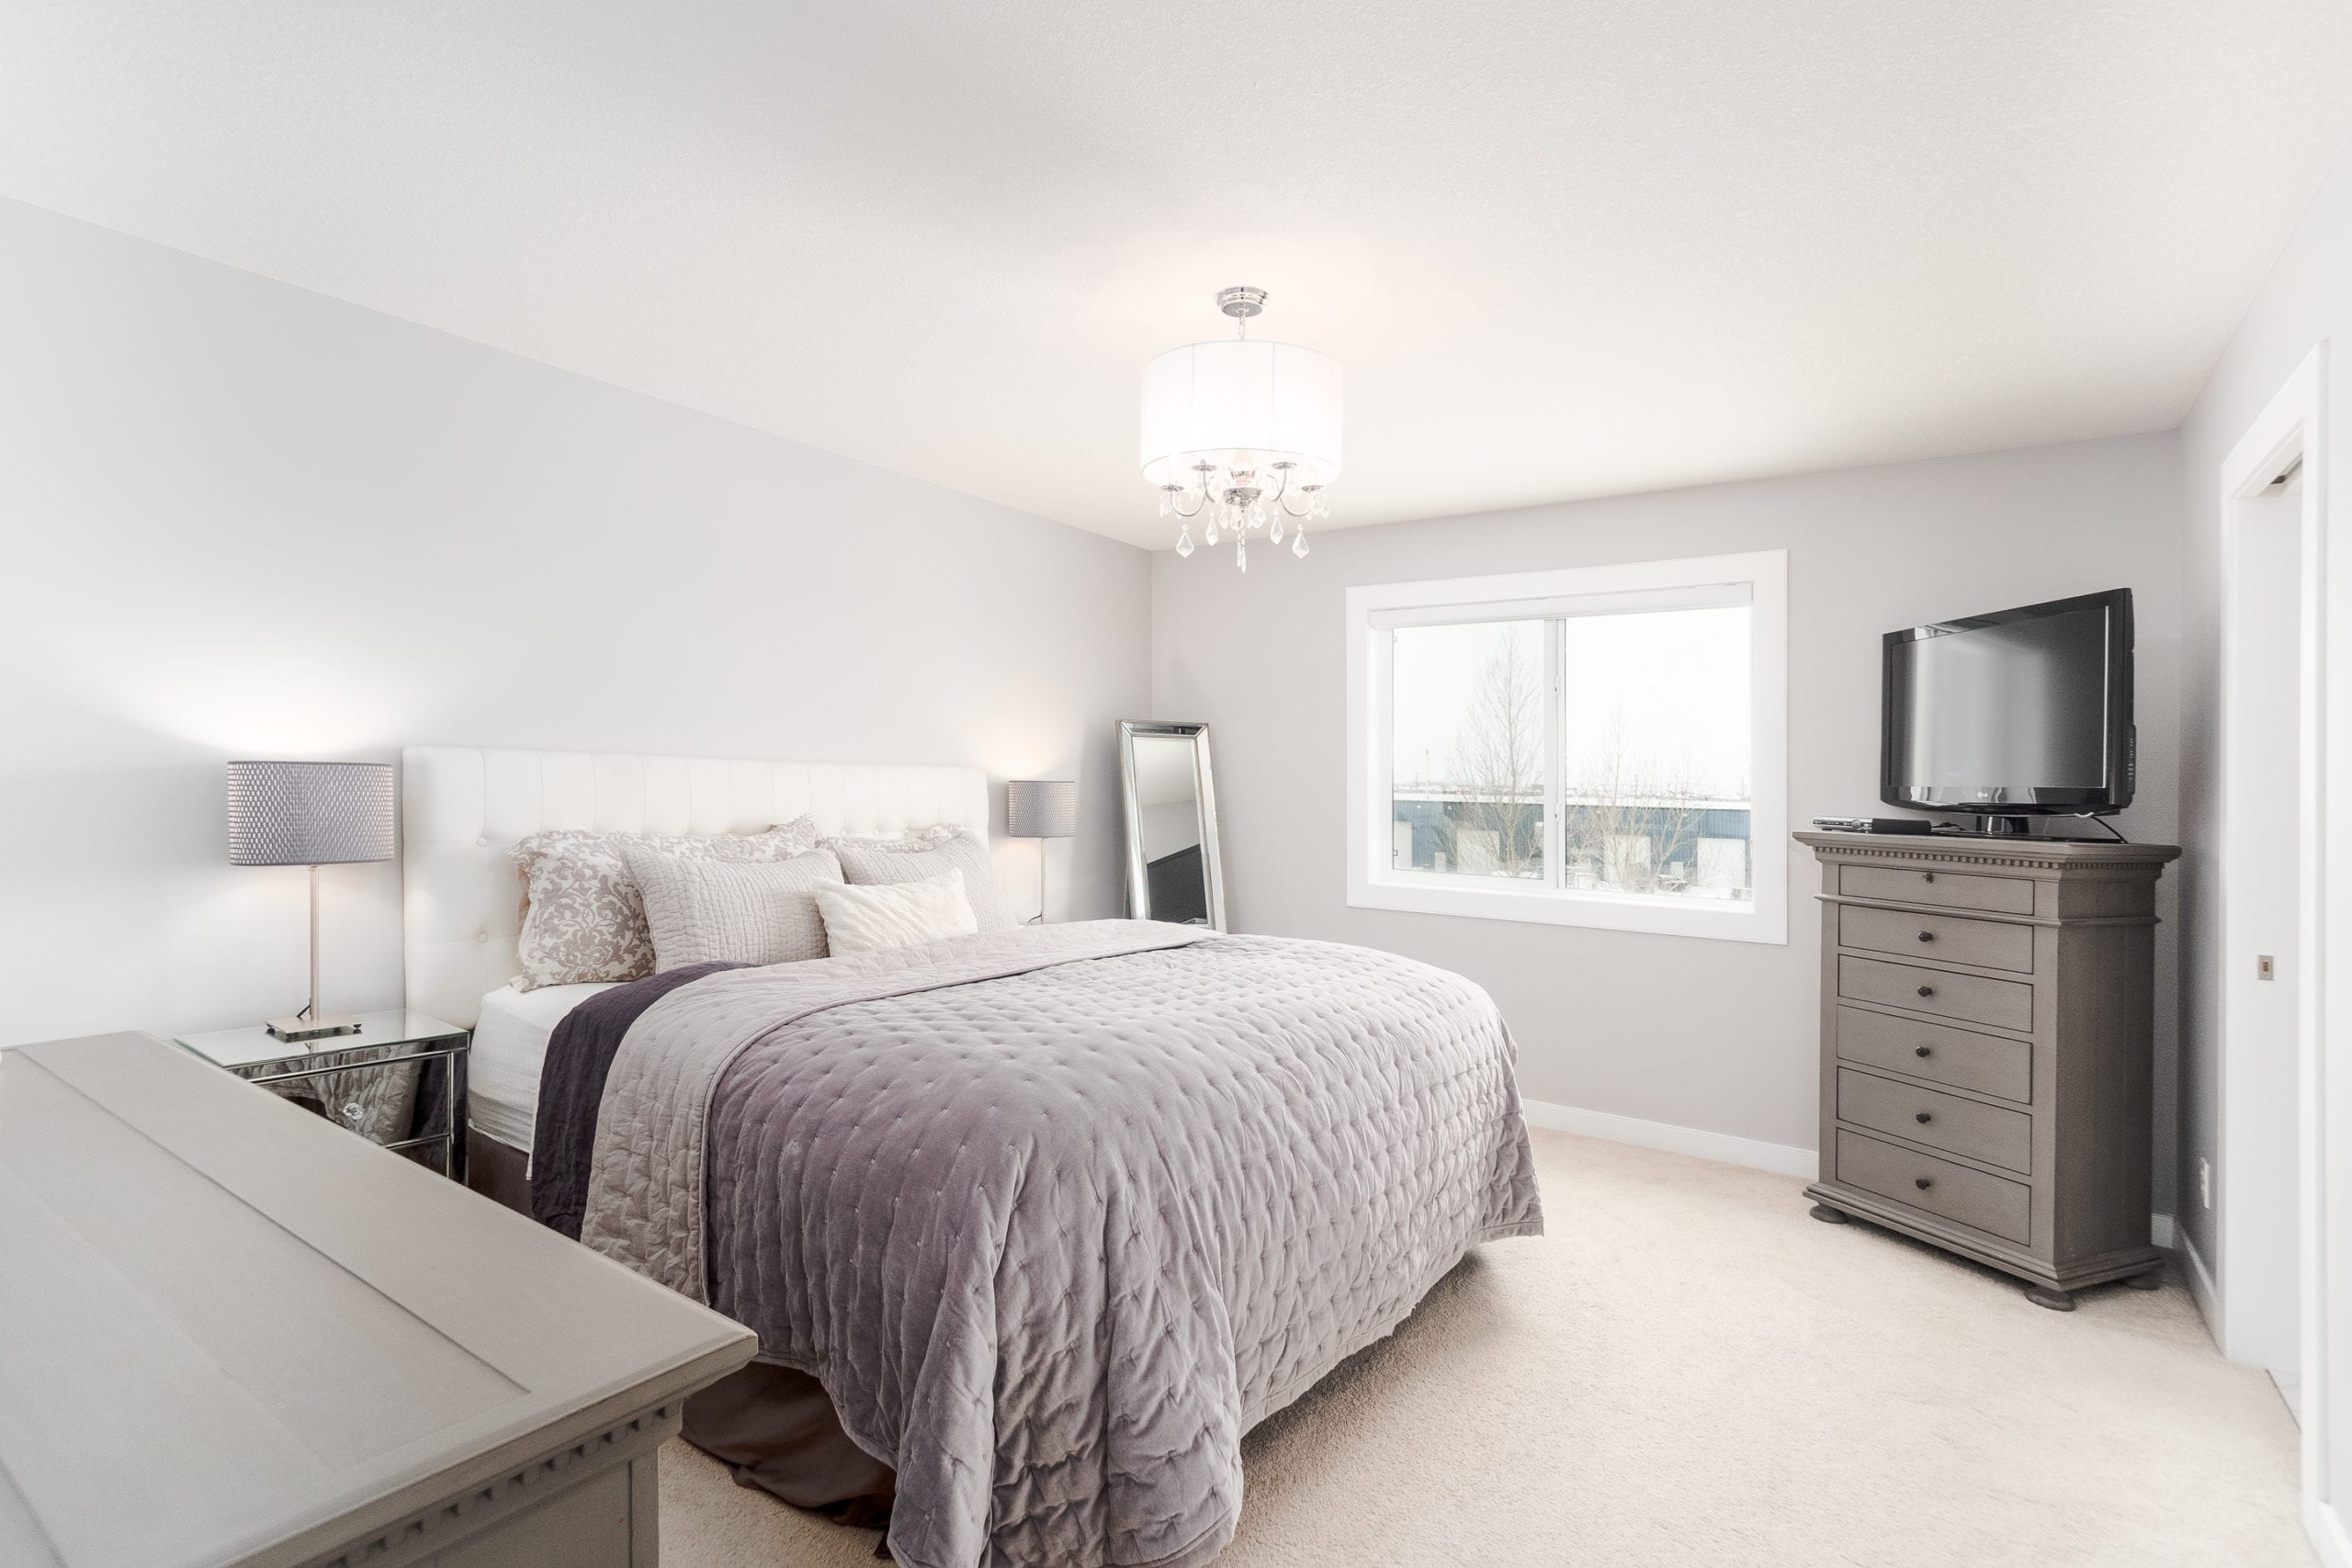 Hello Gorgeous - 1306 Kings Heights Way SE, Airdrie AB. - Tara Molina Real Estate (31 of 53)